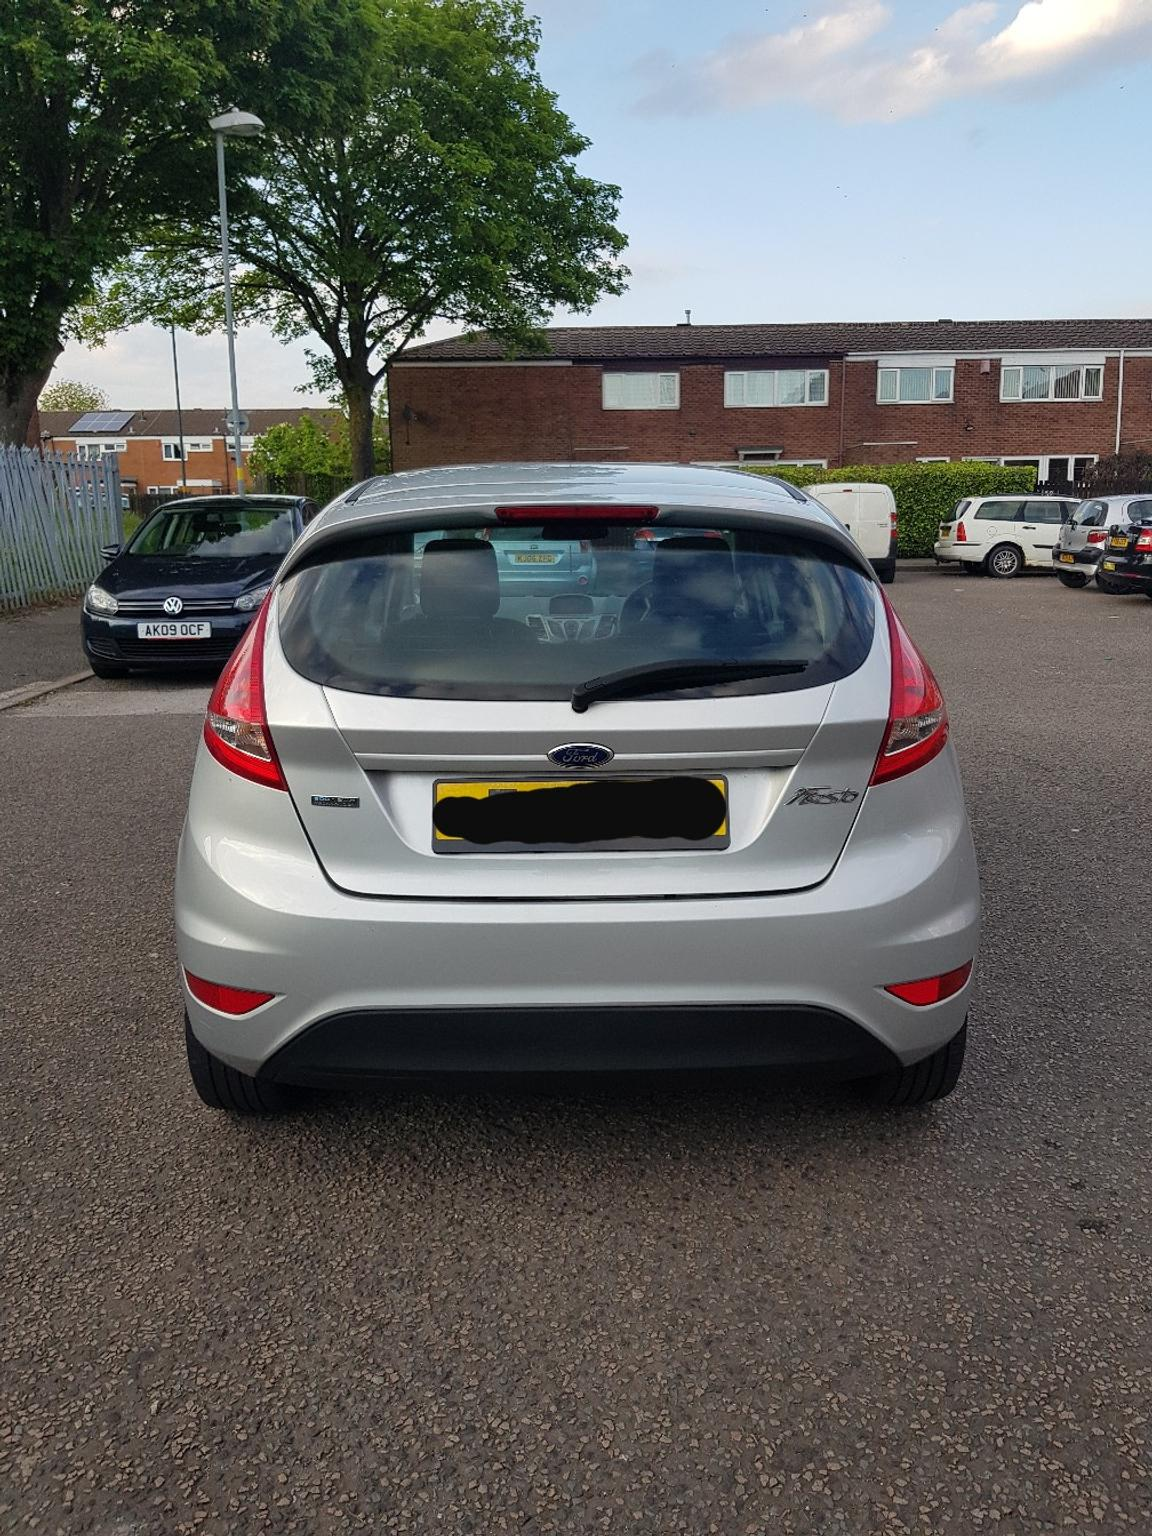 ford fiesta style 59 plate in b7 birmingham for 1 for sale shpock. Black Bedroom Furniture Sets. Home Design Ideas